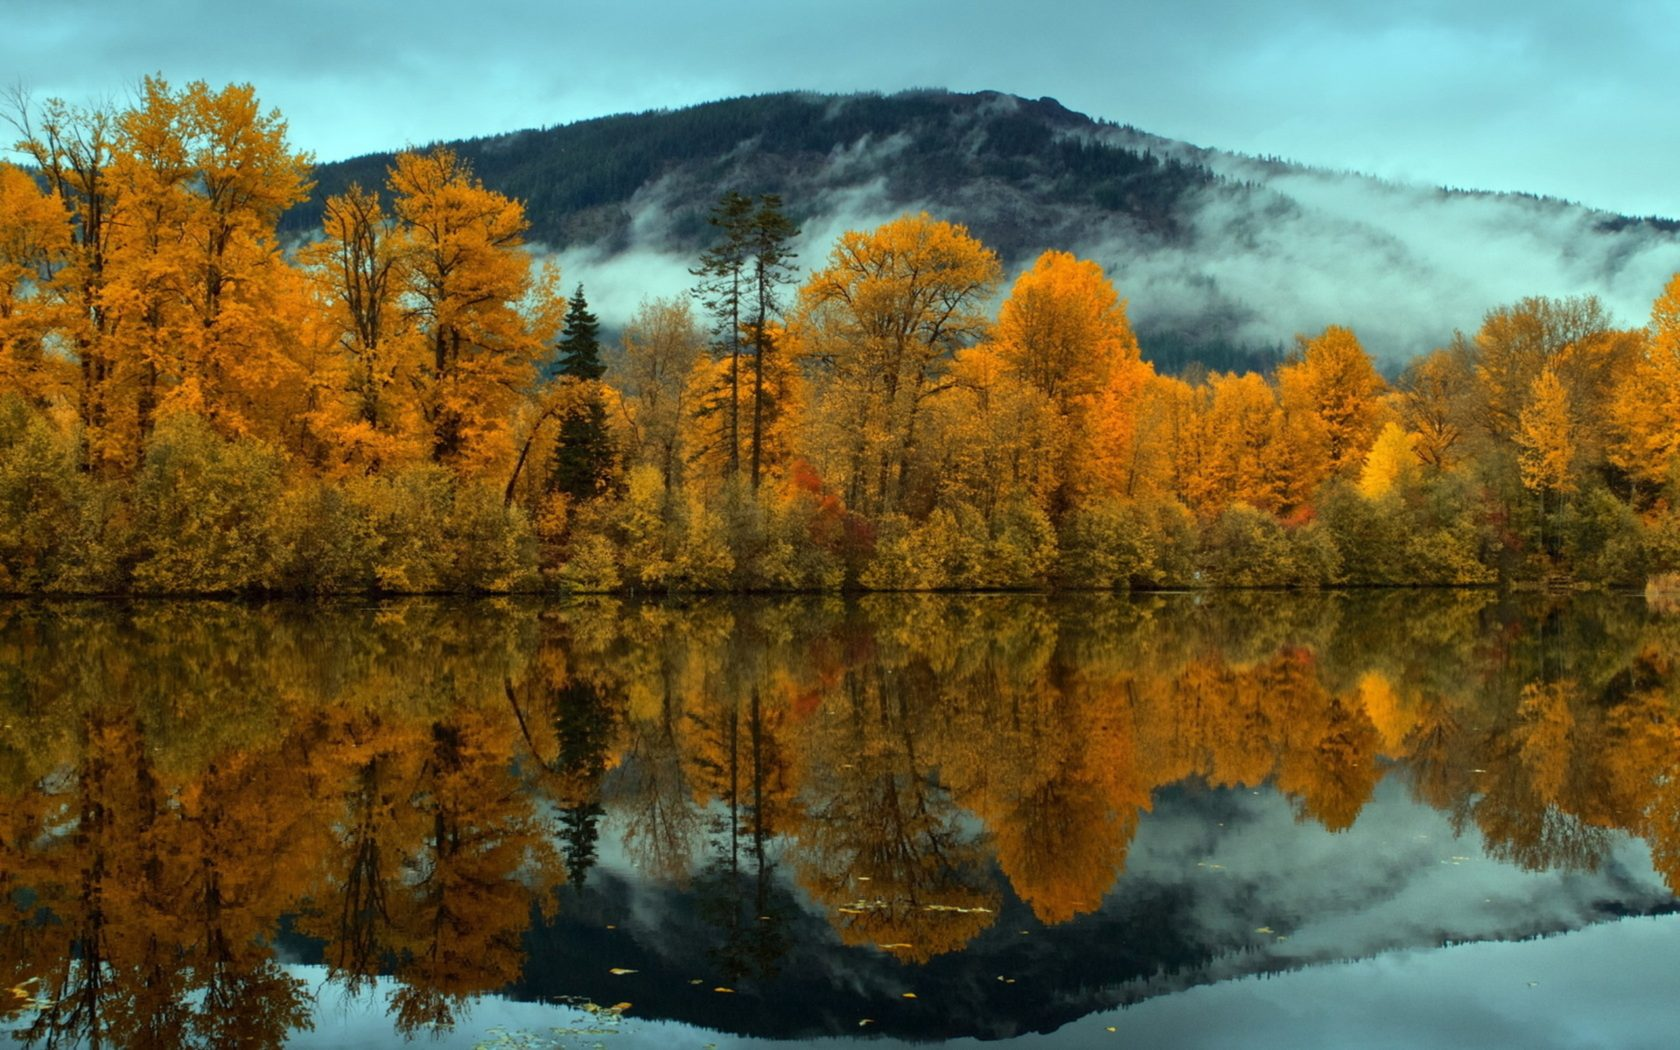 Fall Mountains Hd Wallpaper 13 Nature Landscapes Trees Forest Mountains Clouds Fog Mist